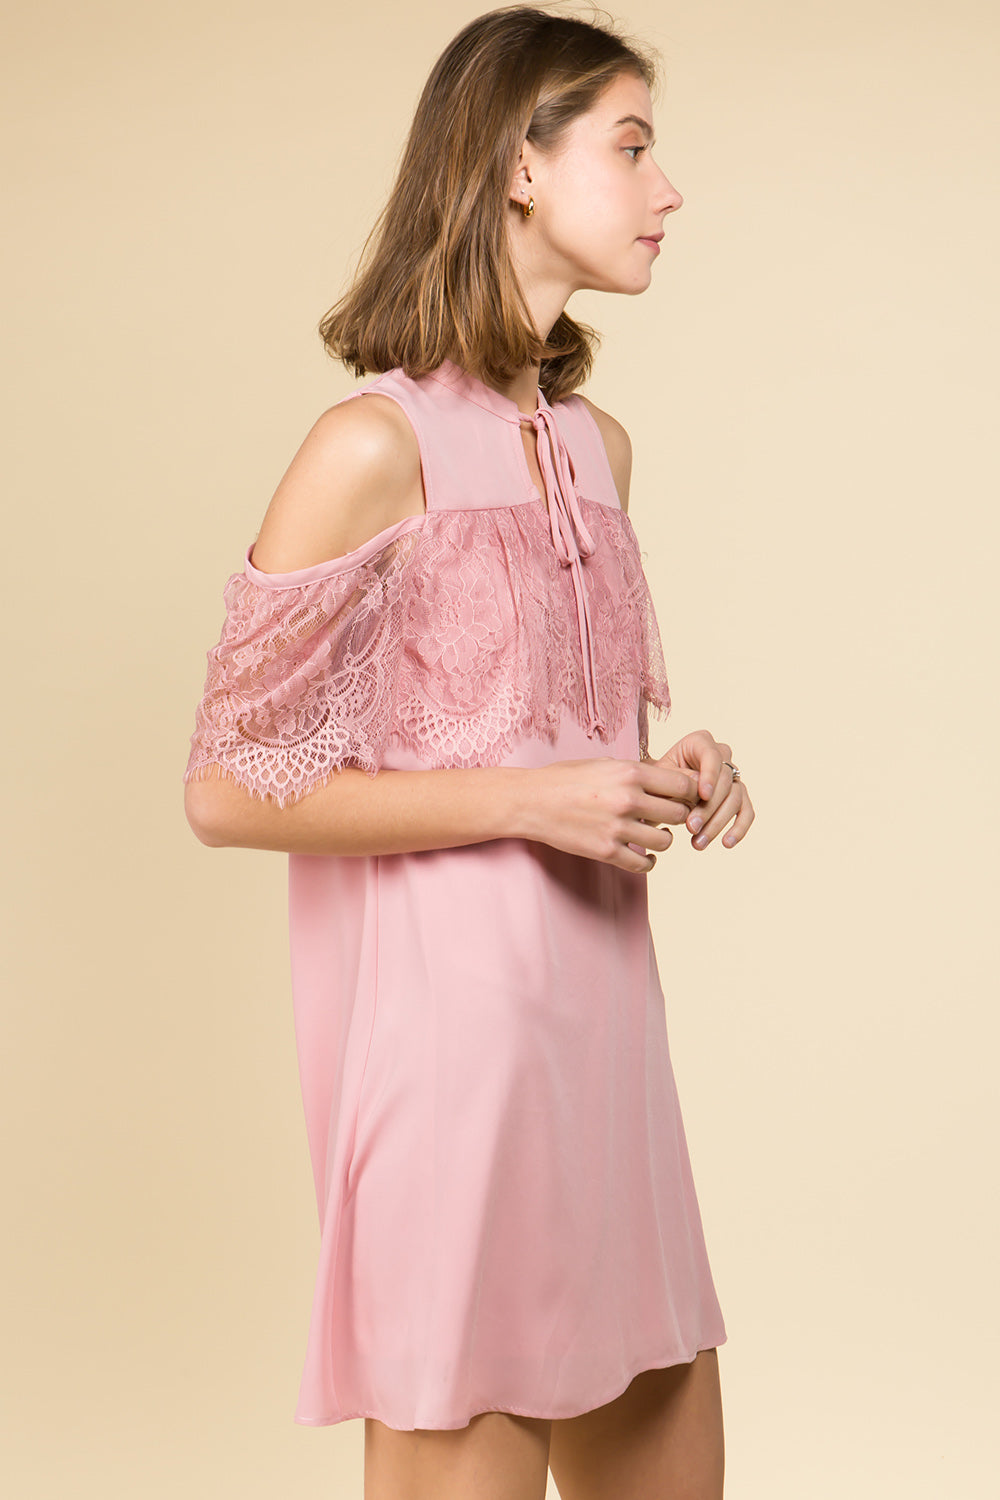 TIE FRONT MOCK NECK LACE RUFFLE COLD SHOULDER DRESS